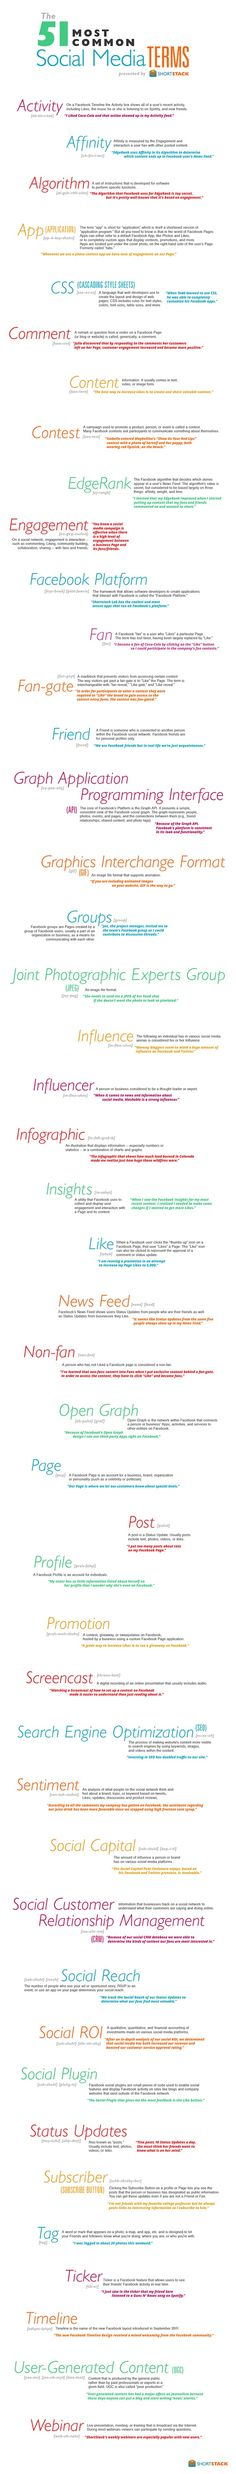 The 51 most common Social Media Terms This is so helpful!